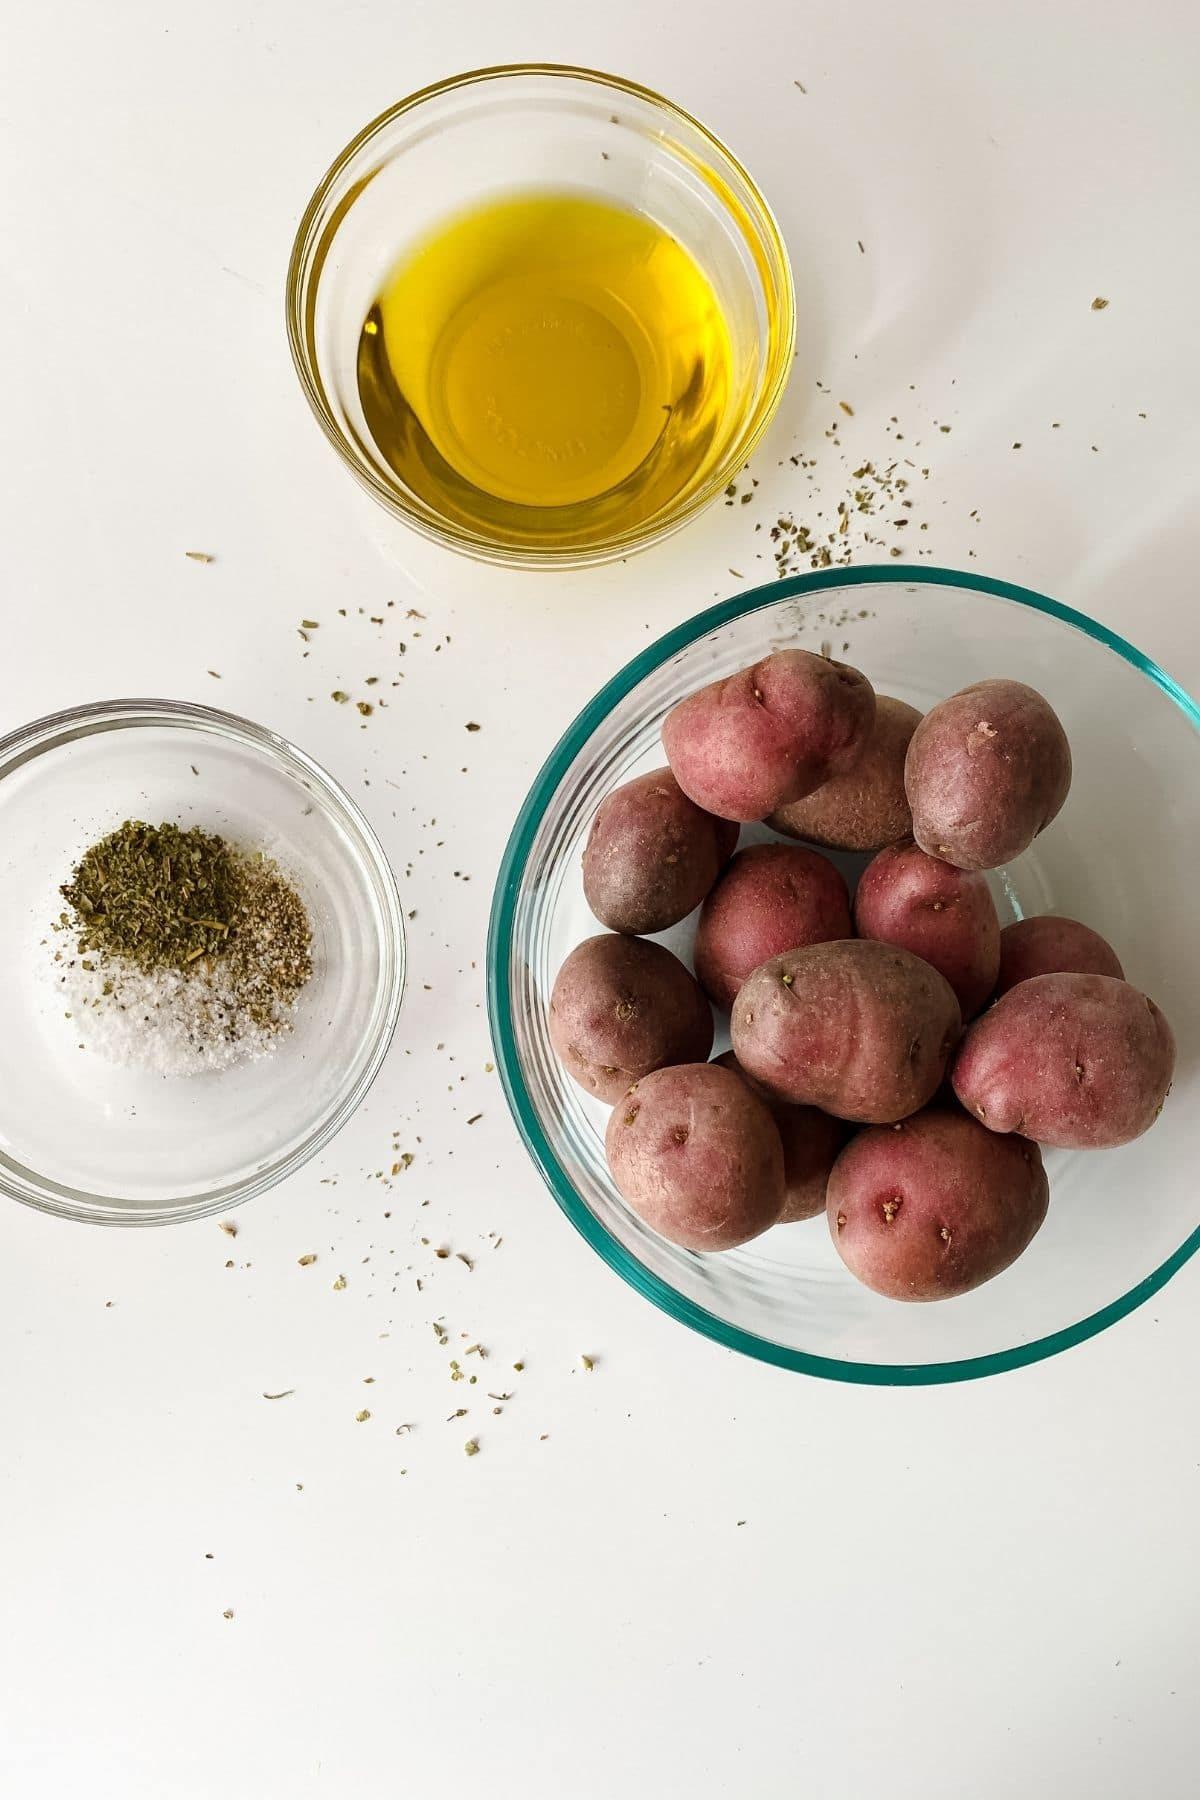 glass bowls of oil herbs and potatoes on white table